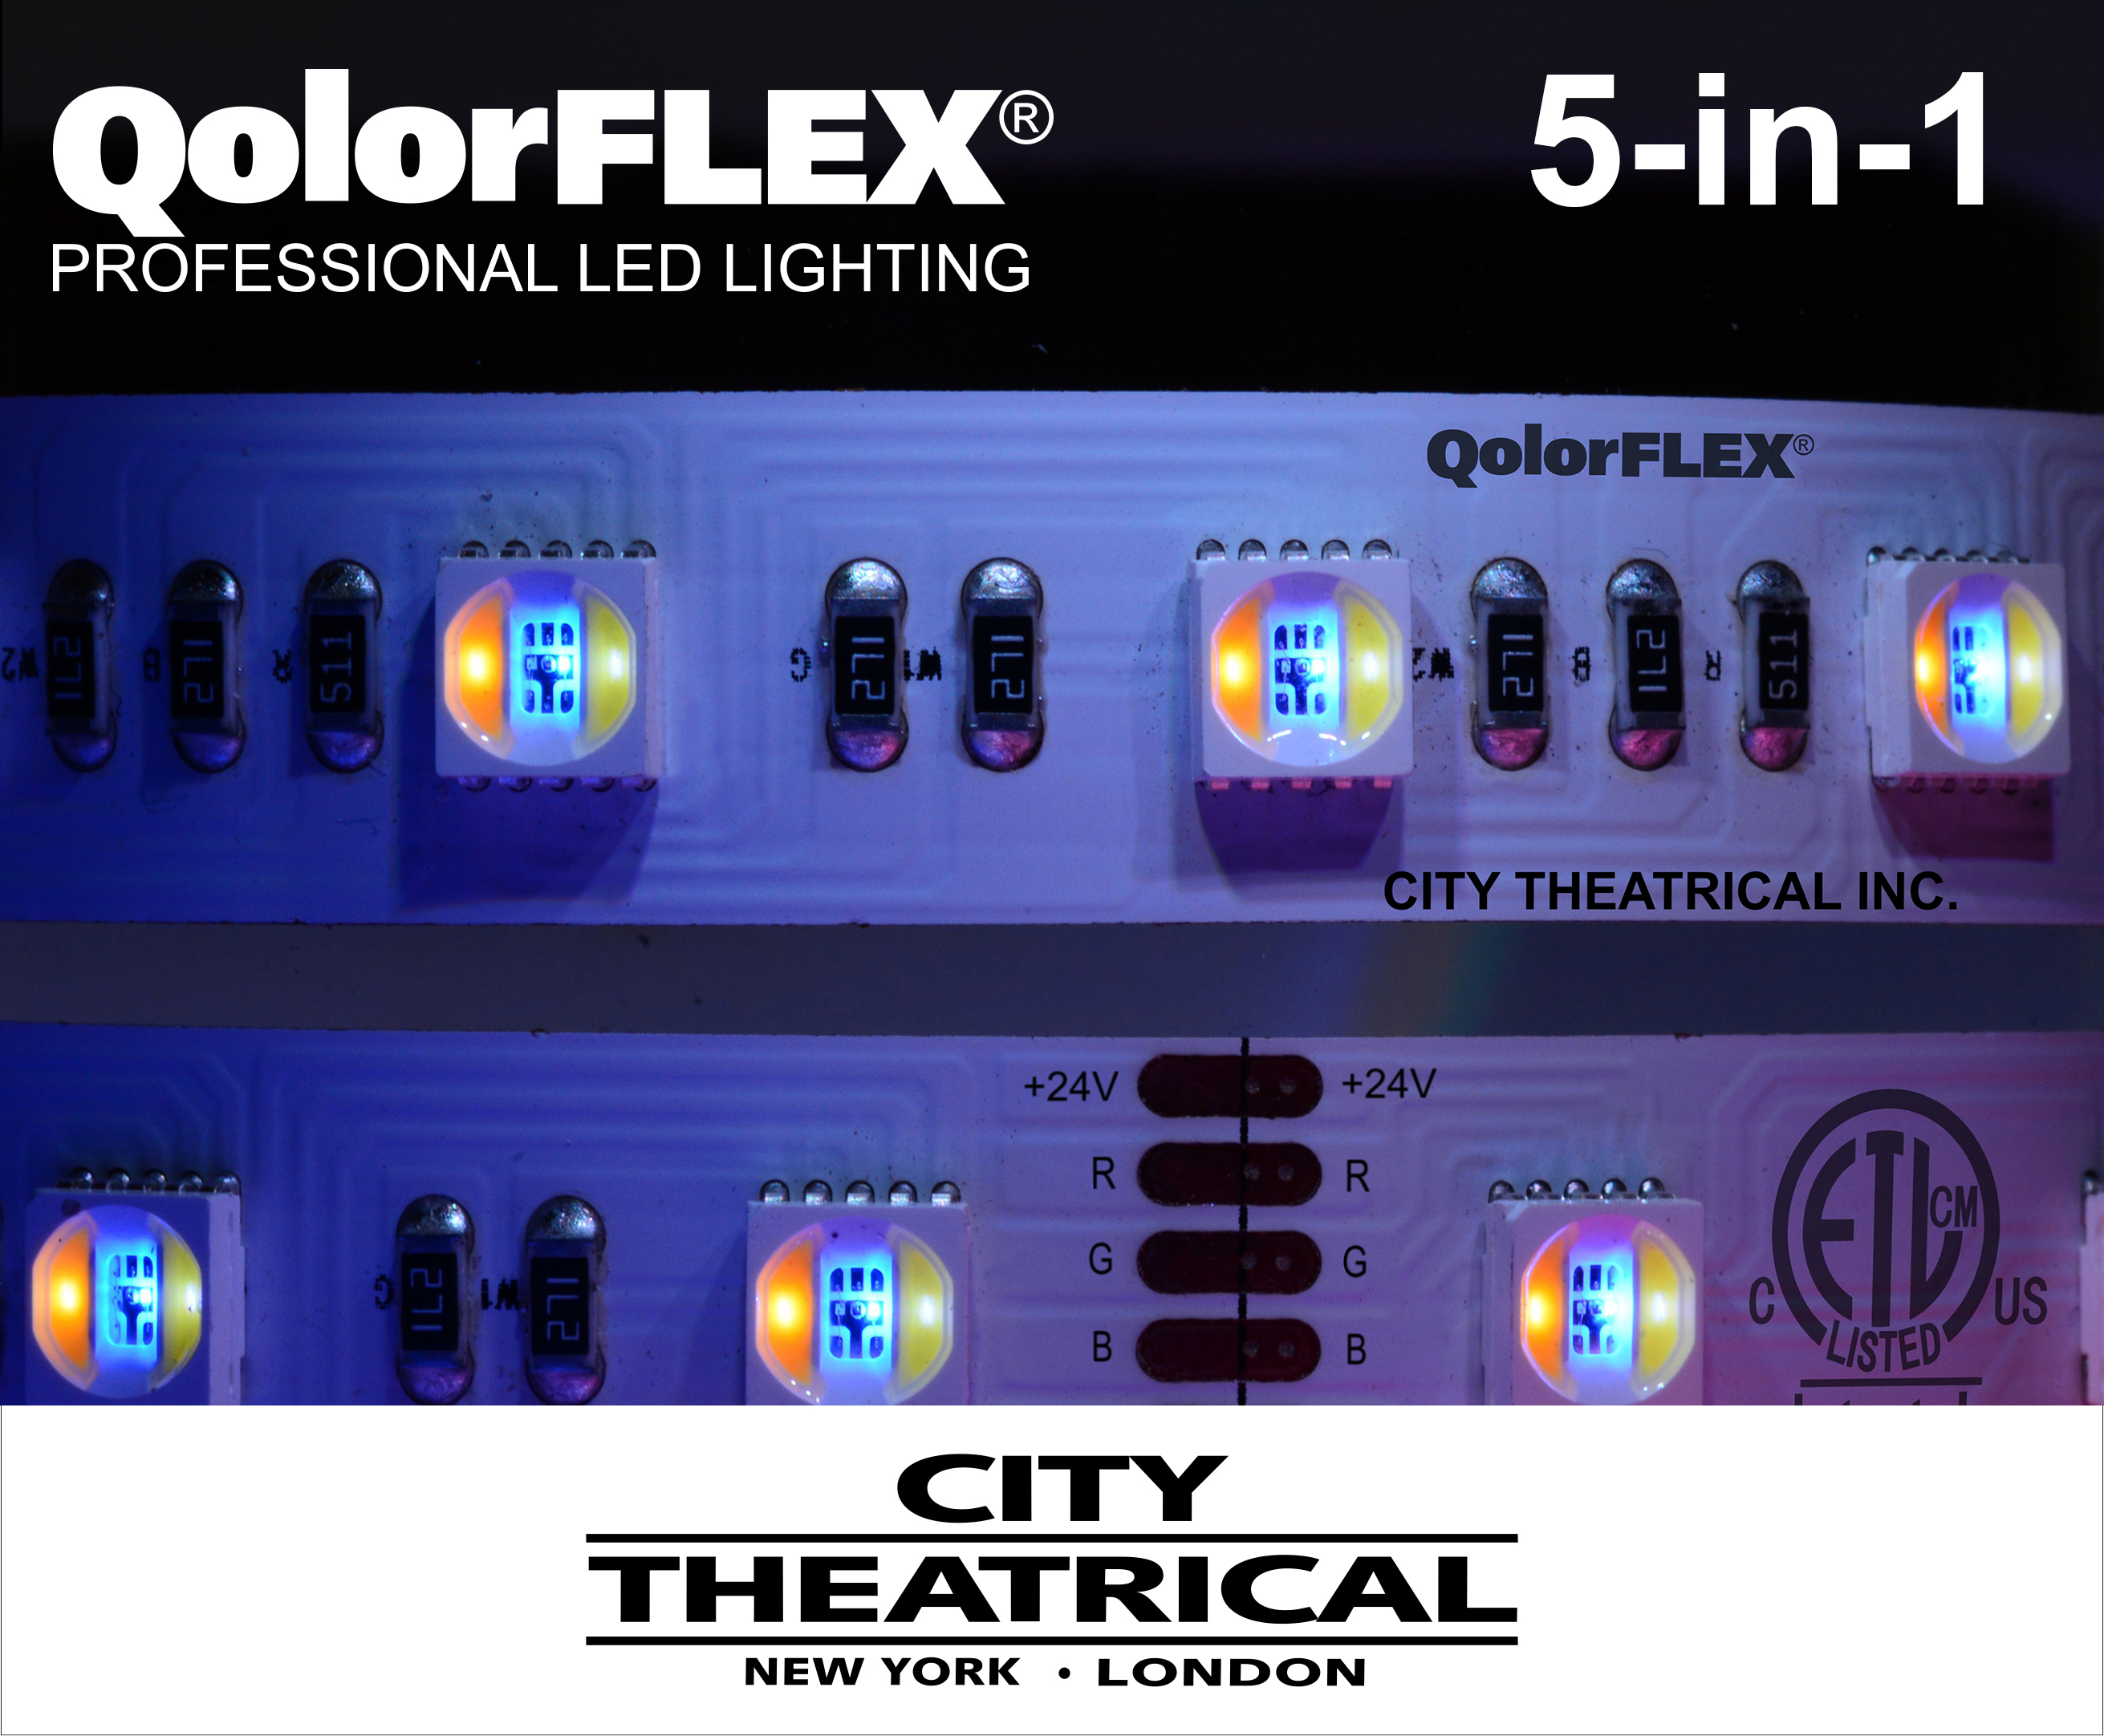 QolorFLEX 5-in-1 LED Tape with logos